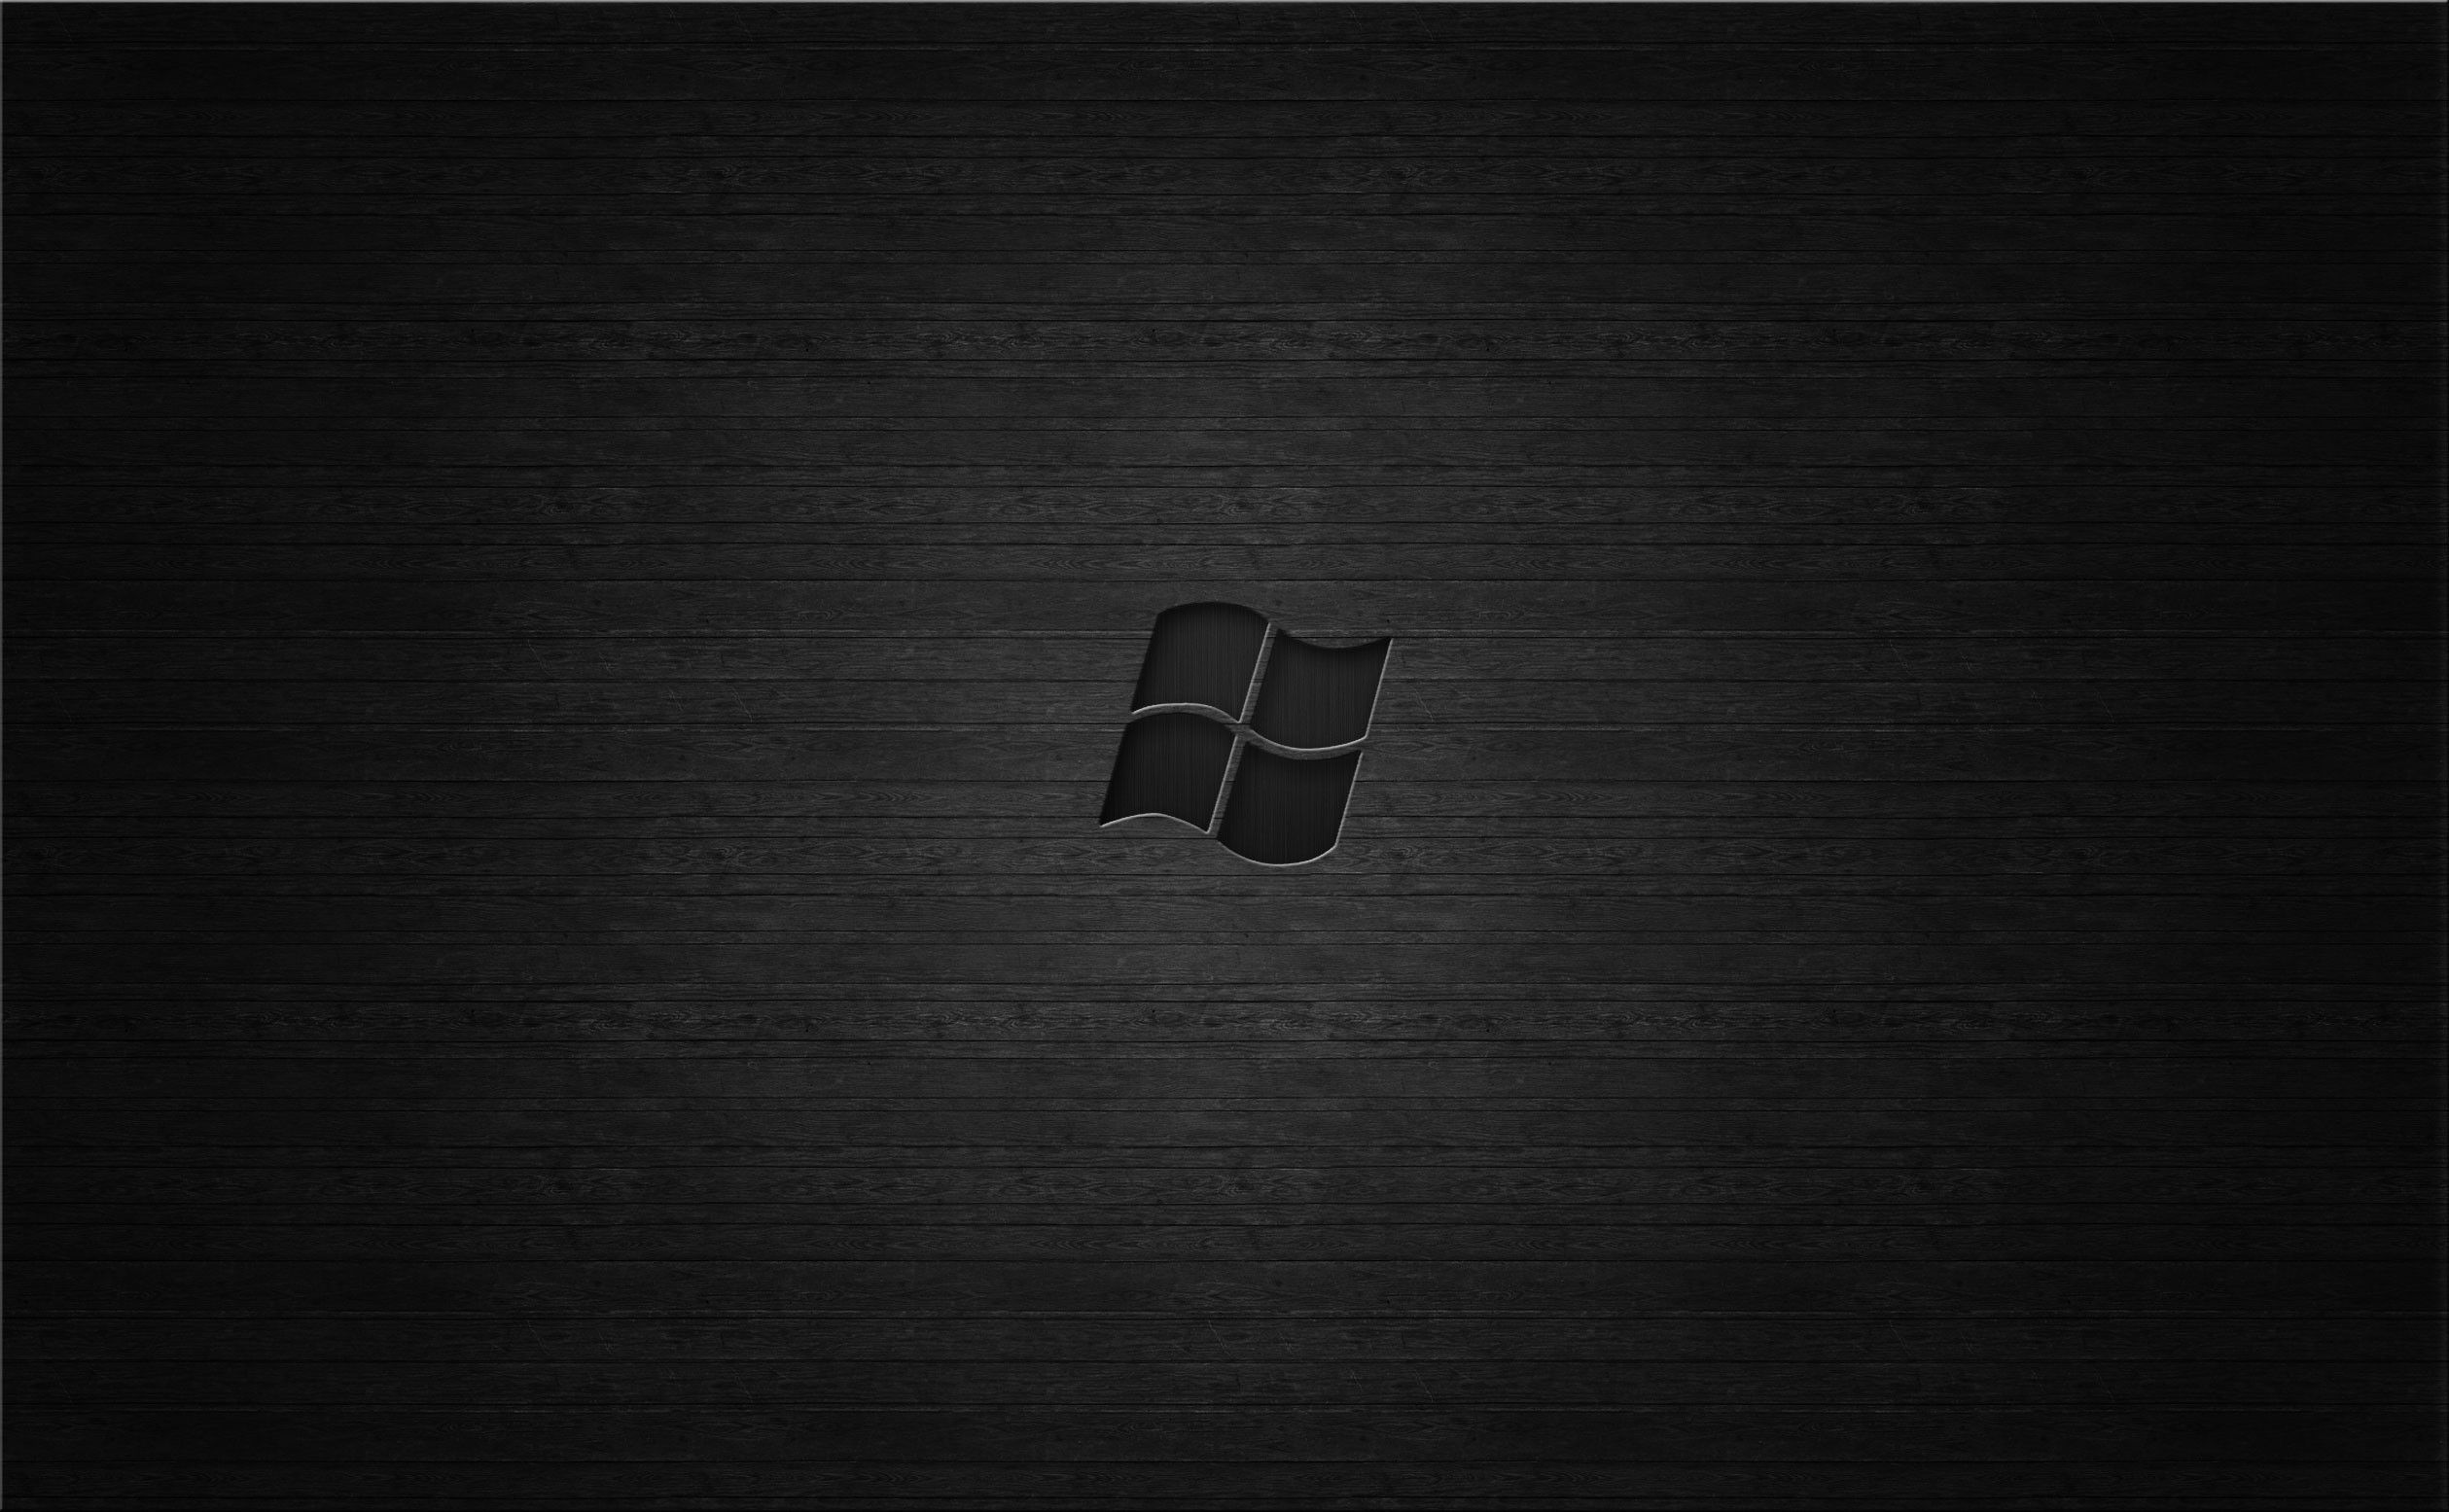 windows 7 dark wallpaper - 2018 wallpapers hd | dark wallpaper and